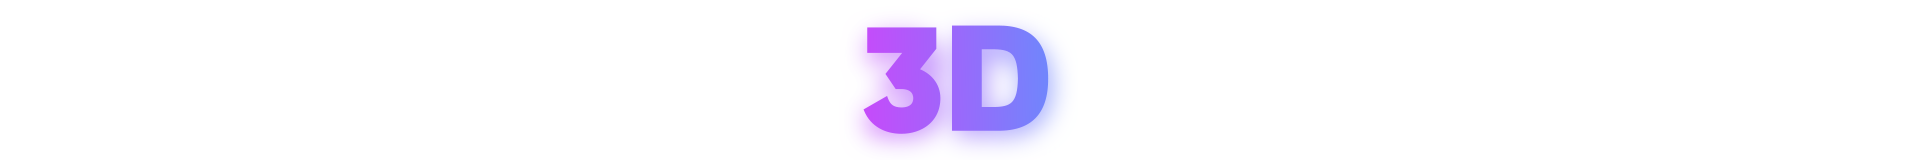 00-TITLE-3-D-CATEGORIE-00000